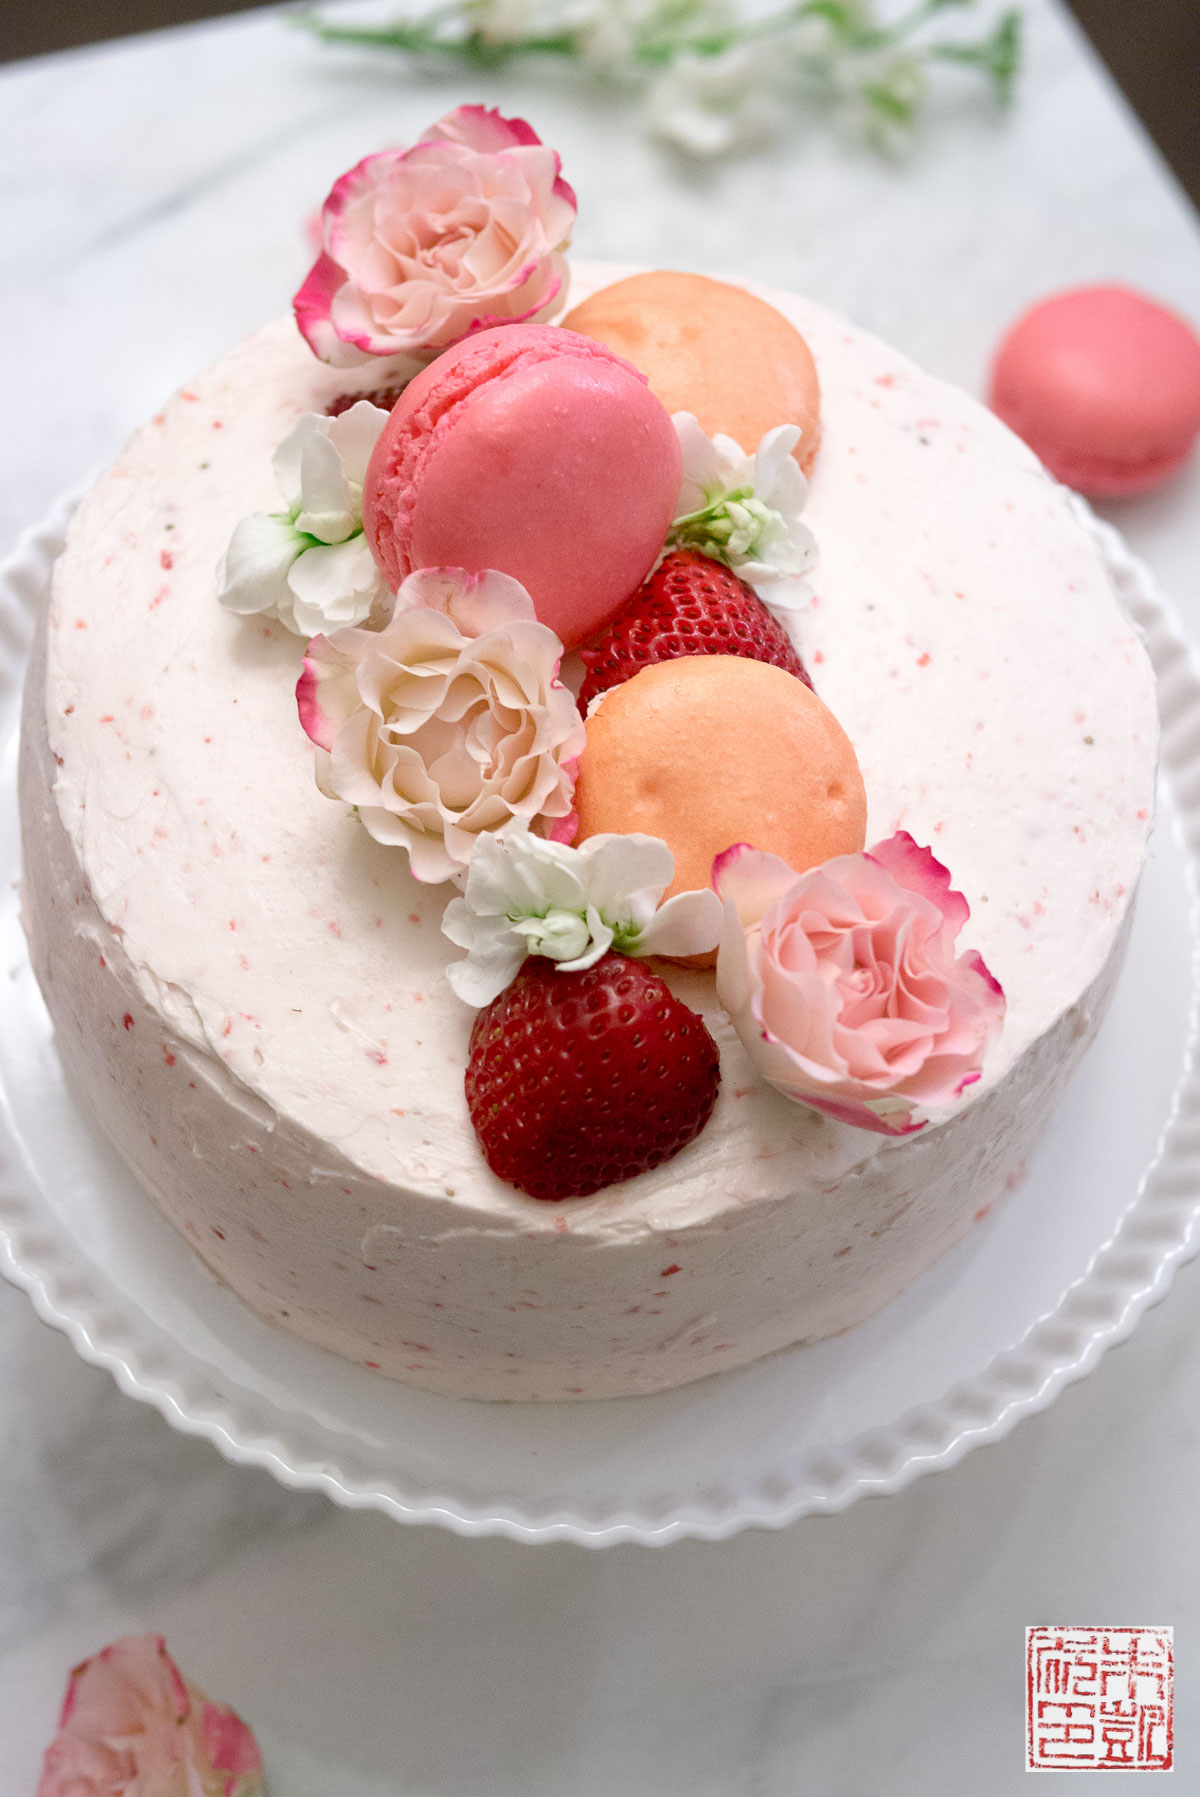 Strawberry Cream Filling For Layer Cake